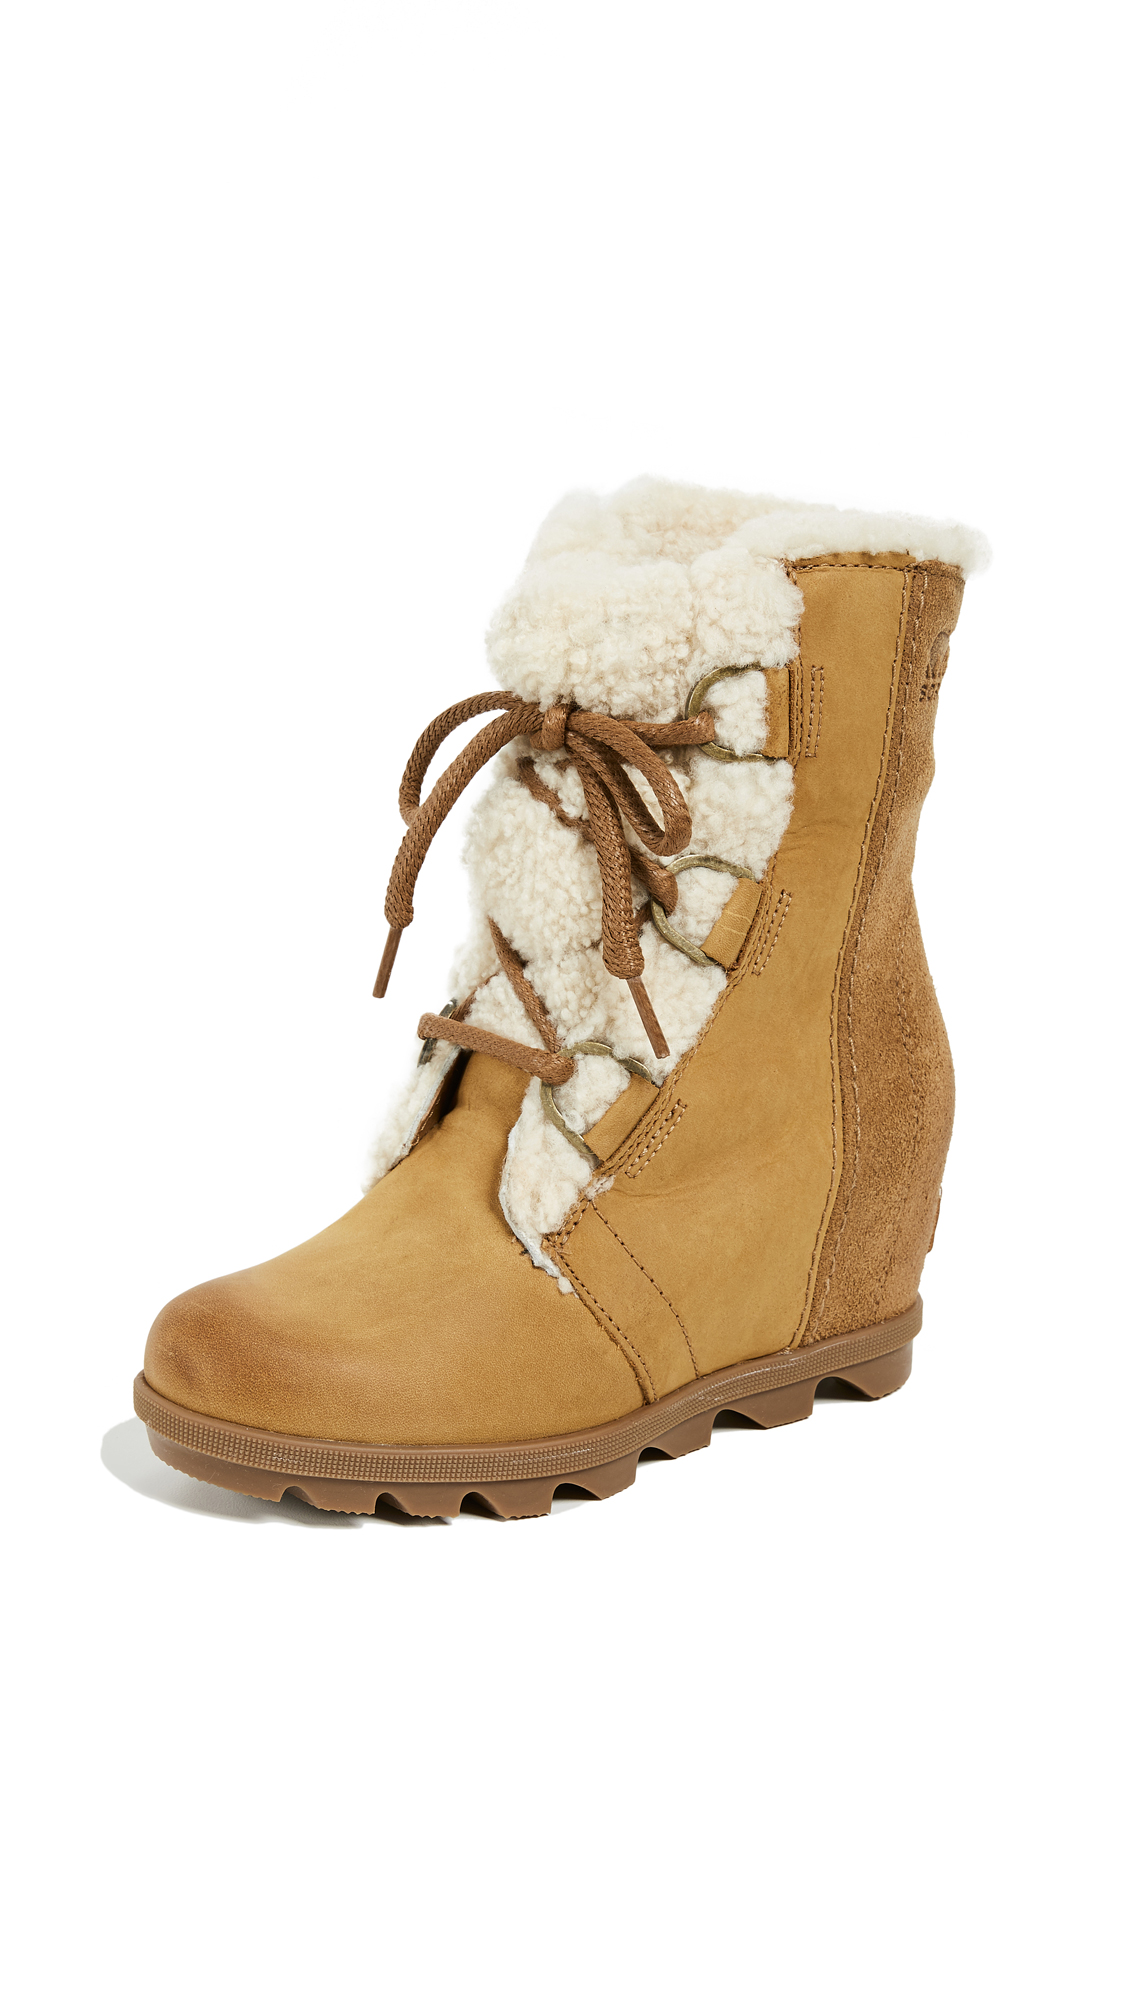 Sorel Joan Of Arctic Wedge II Lux Boots - Camel Brown